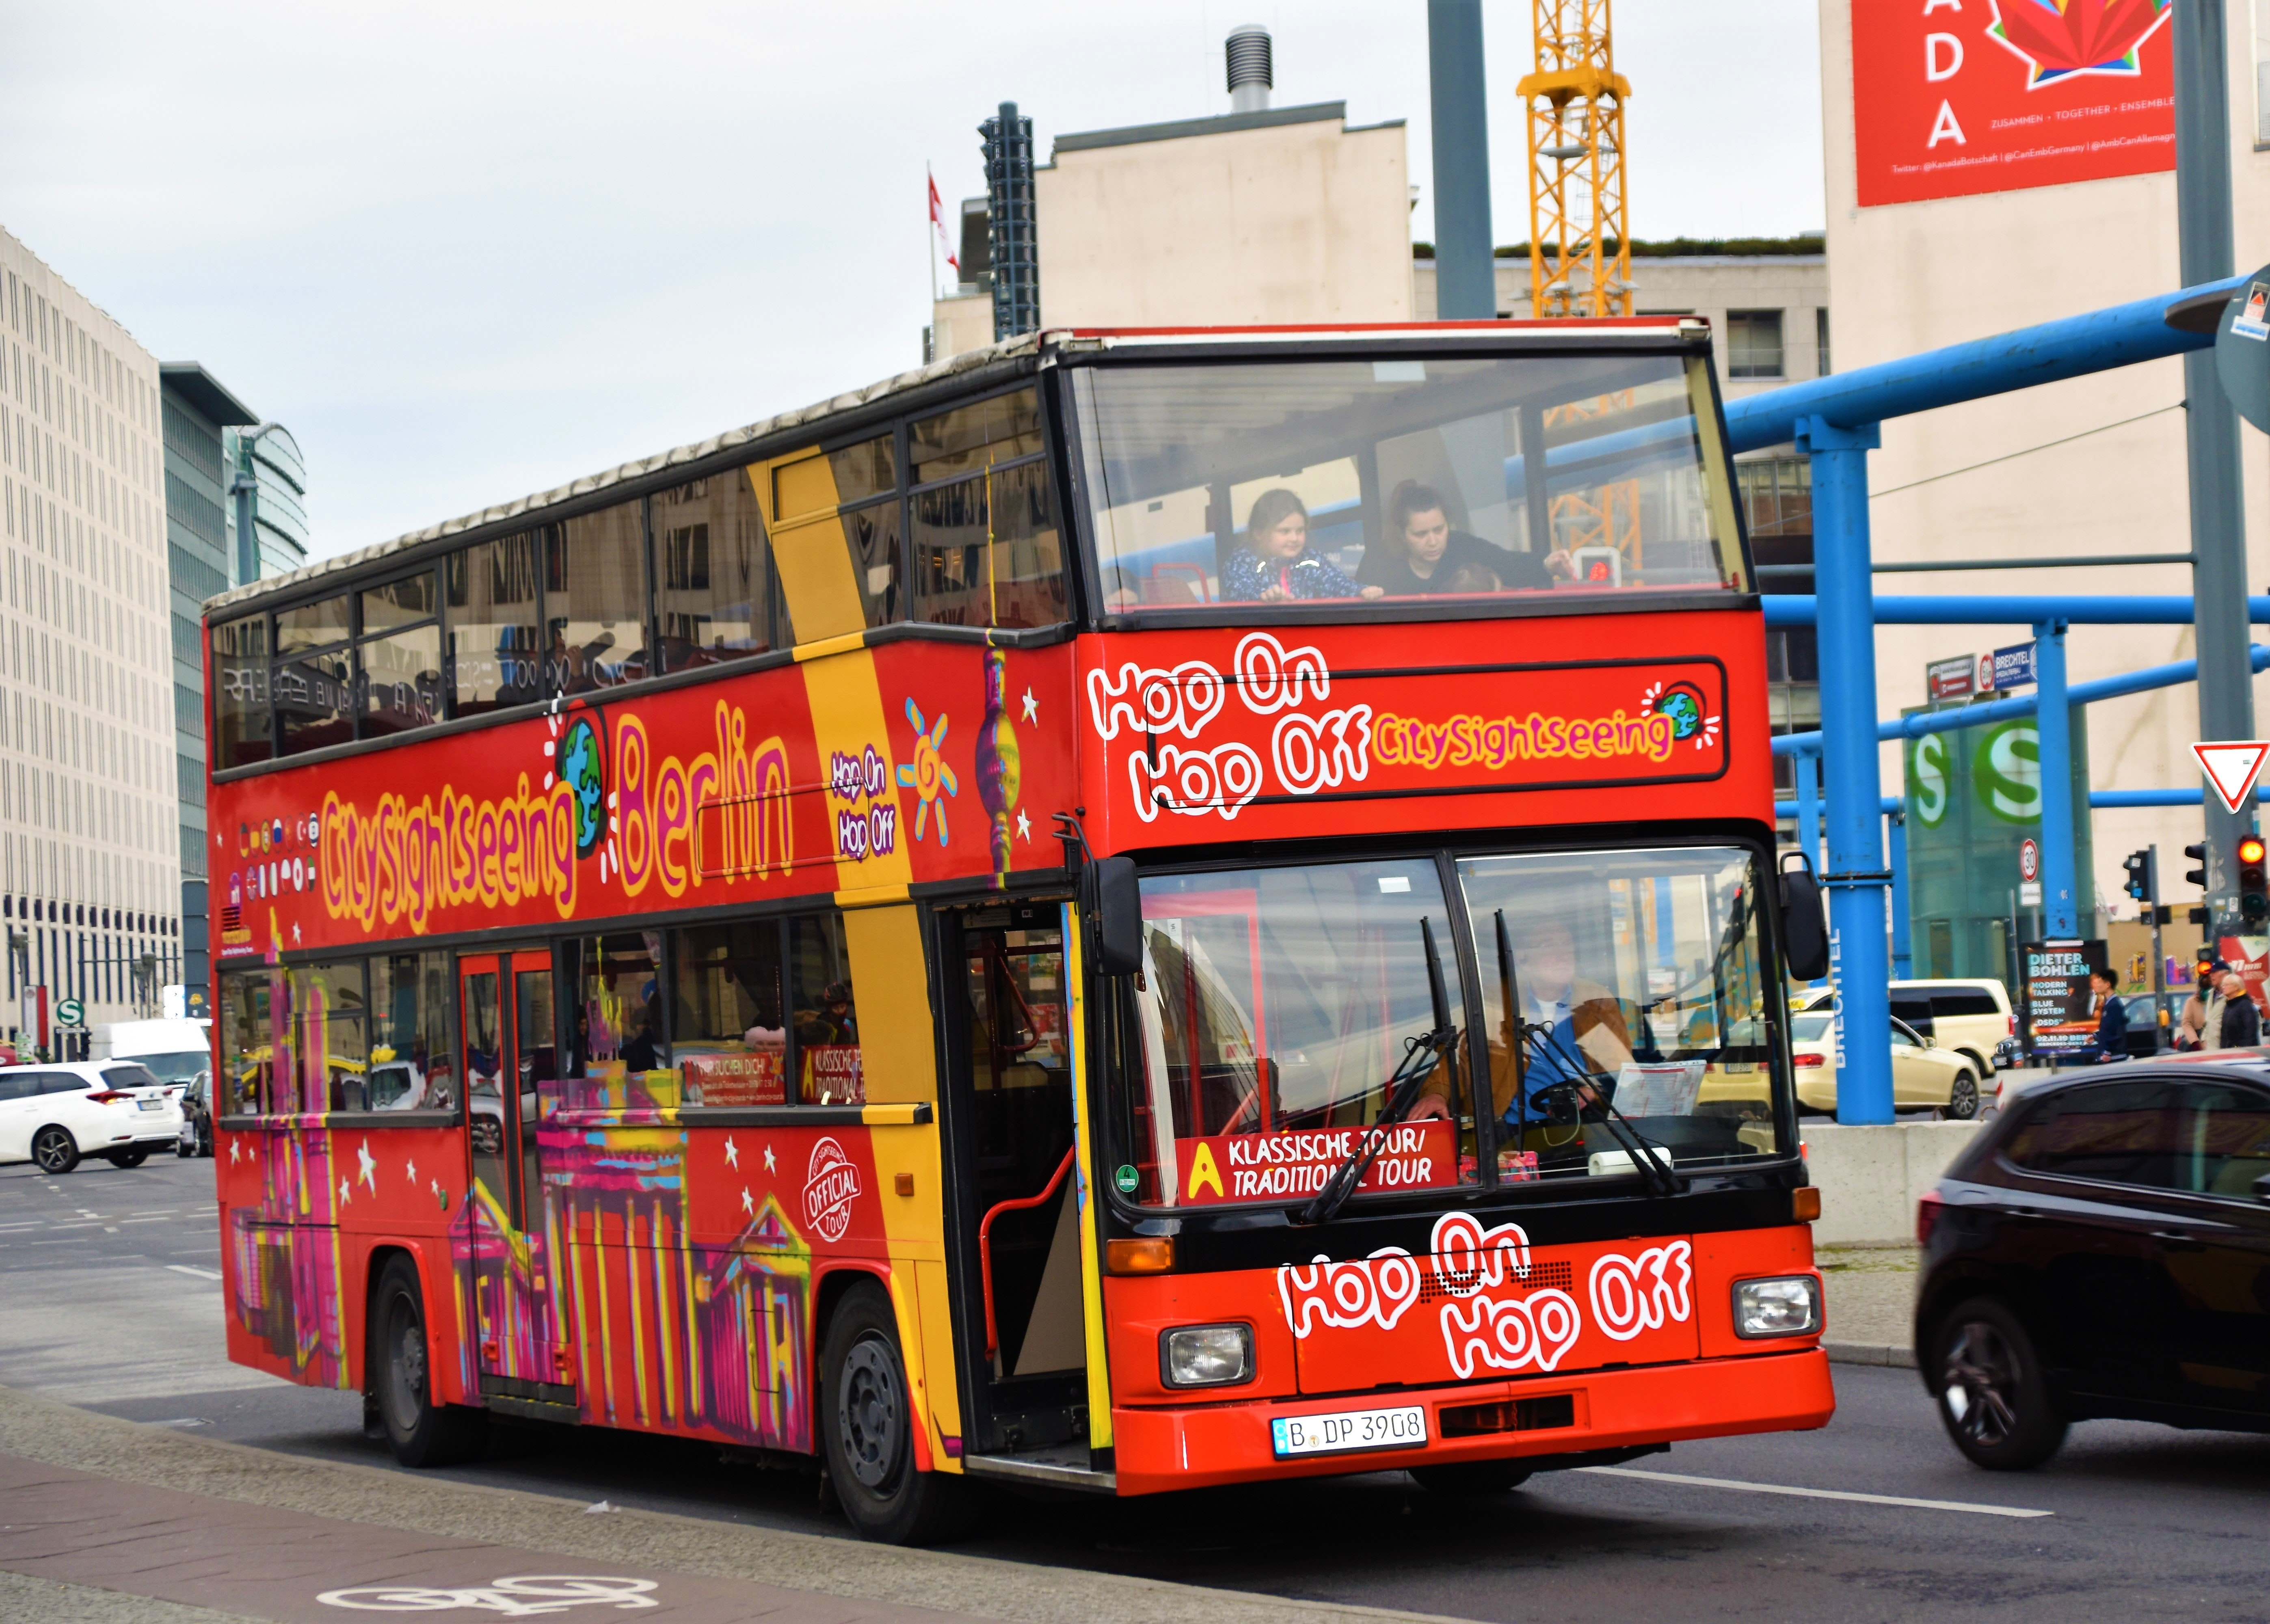 Hop On & Hop Off Bus, Things to do in Amsterdam in April